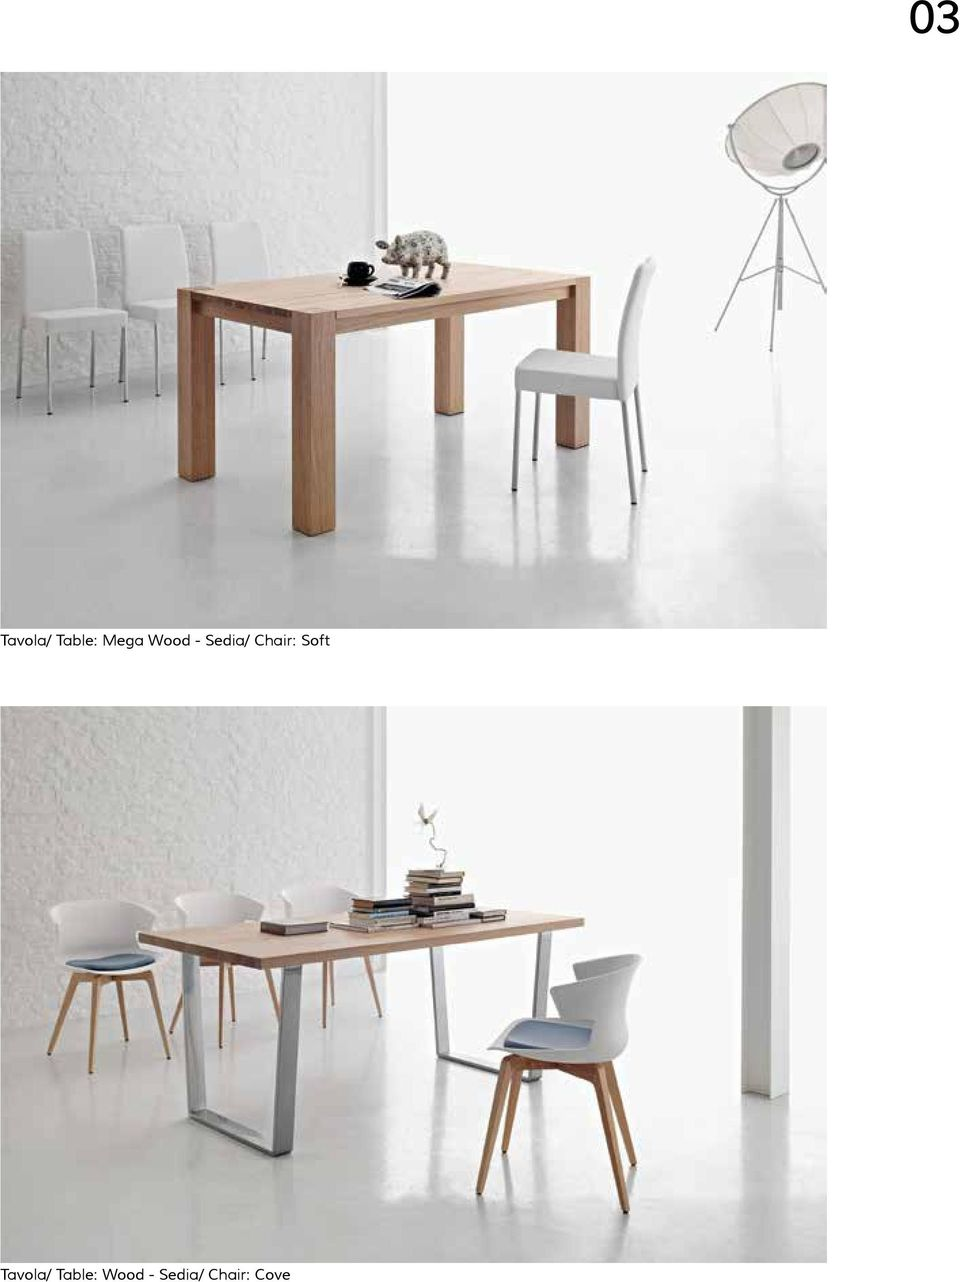 Soft Tavola/ Table: